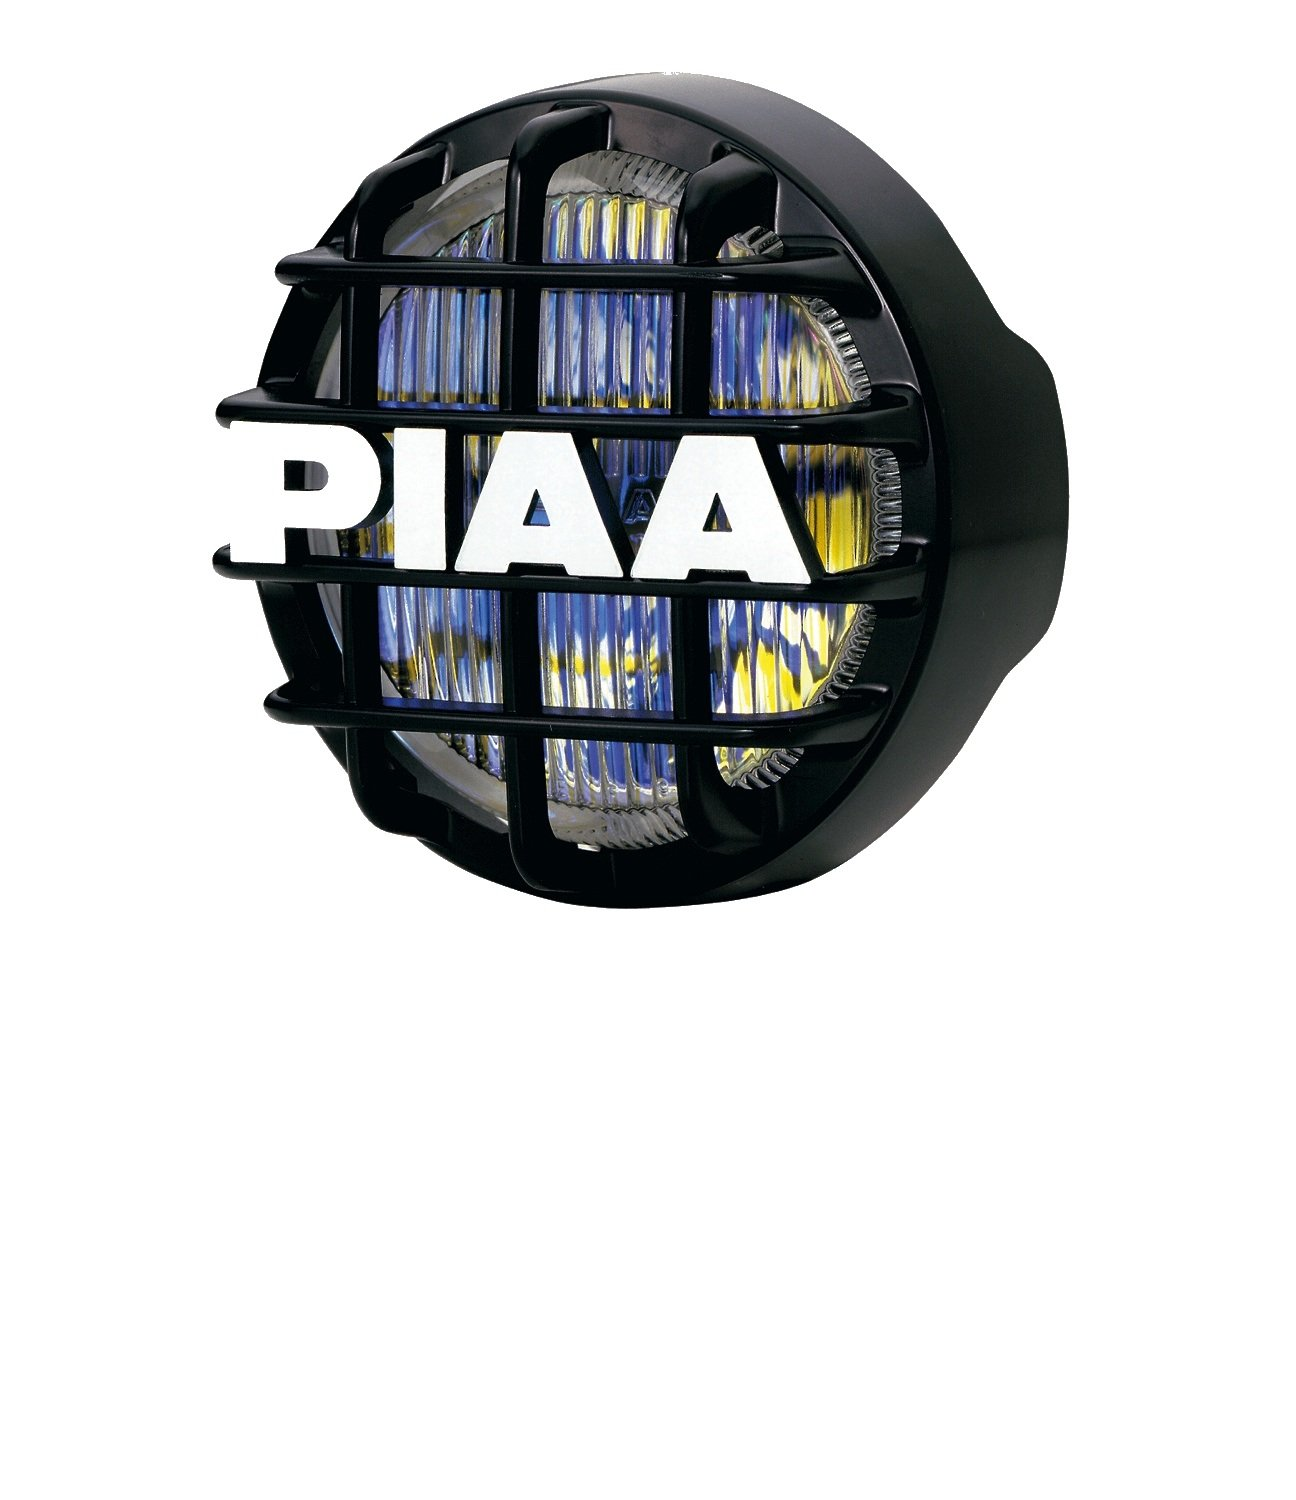 71aRlGFElUL._SL1500_ amazon com piaa 5161 plasma ion fog lamp kit automotive piaa 520 wiring harness at alyssarenee.co